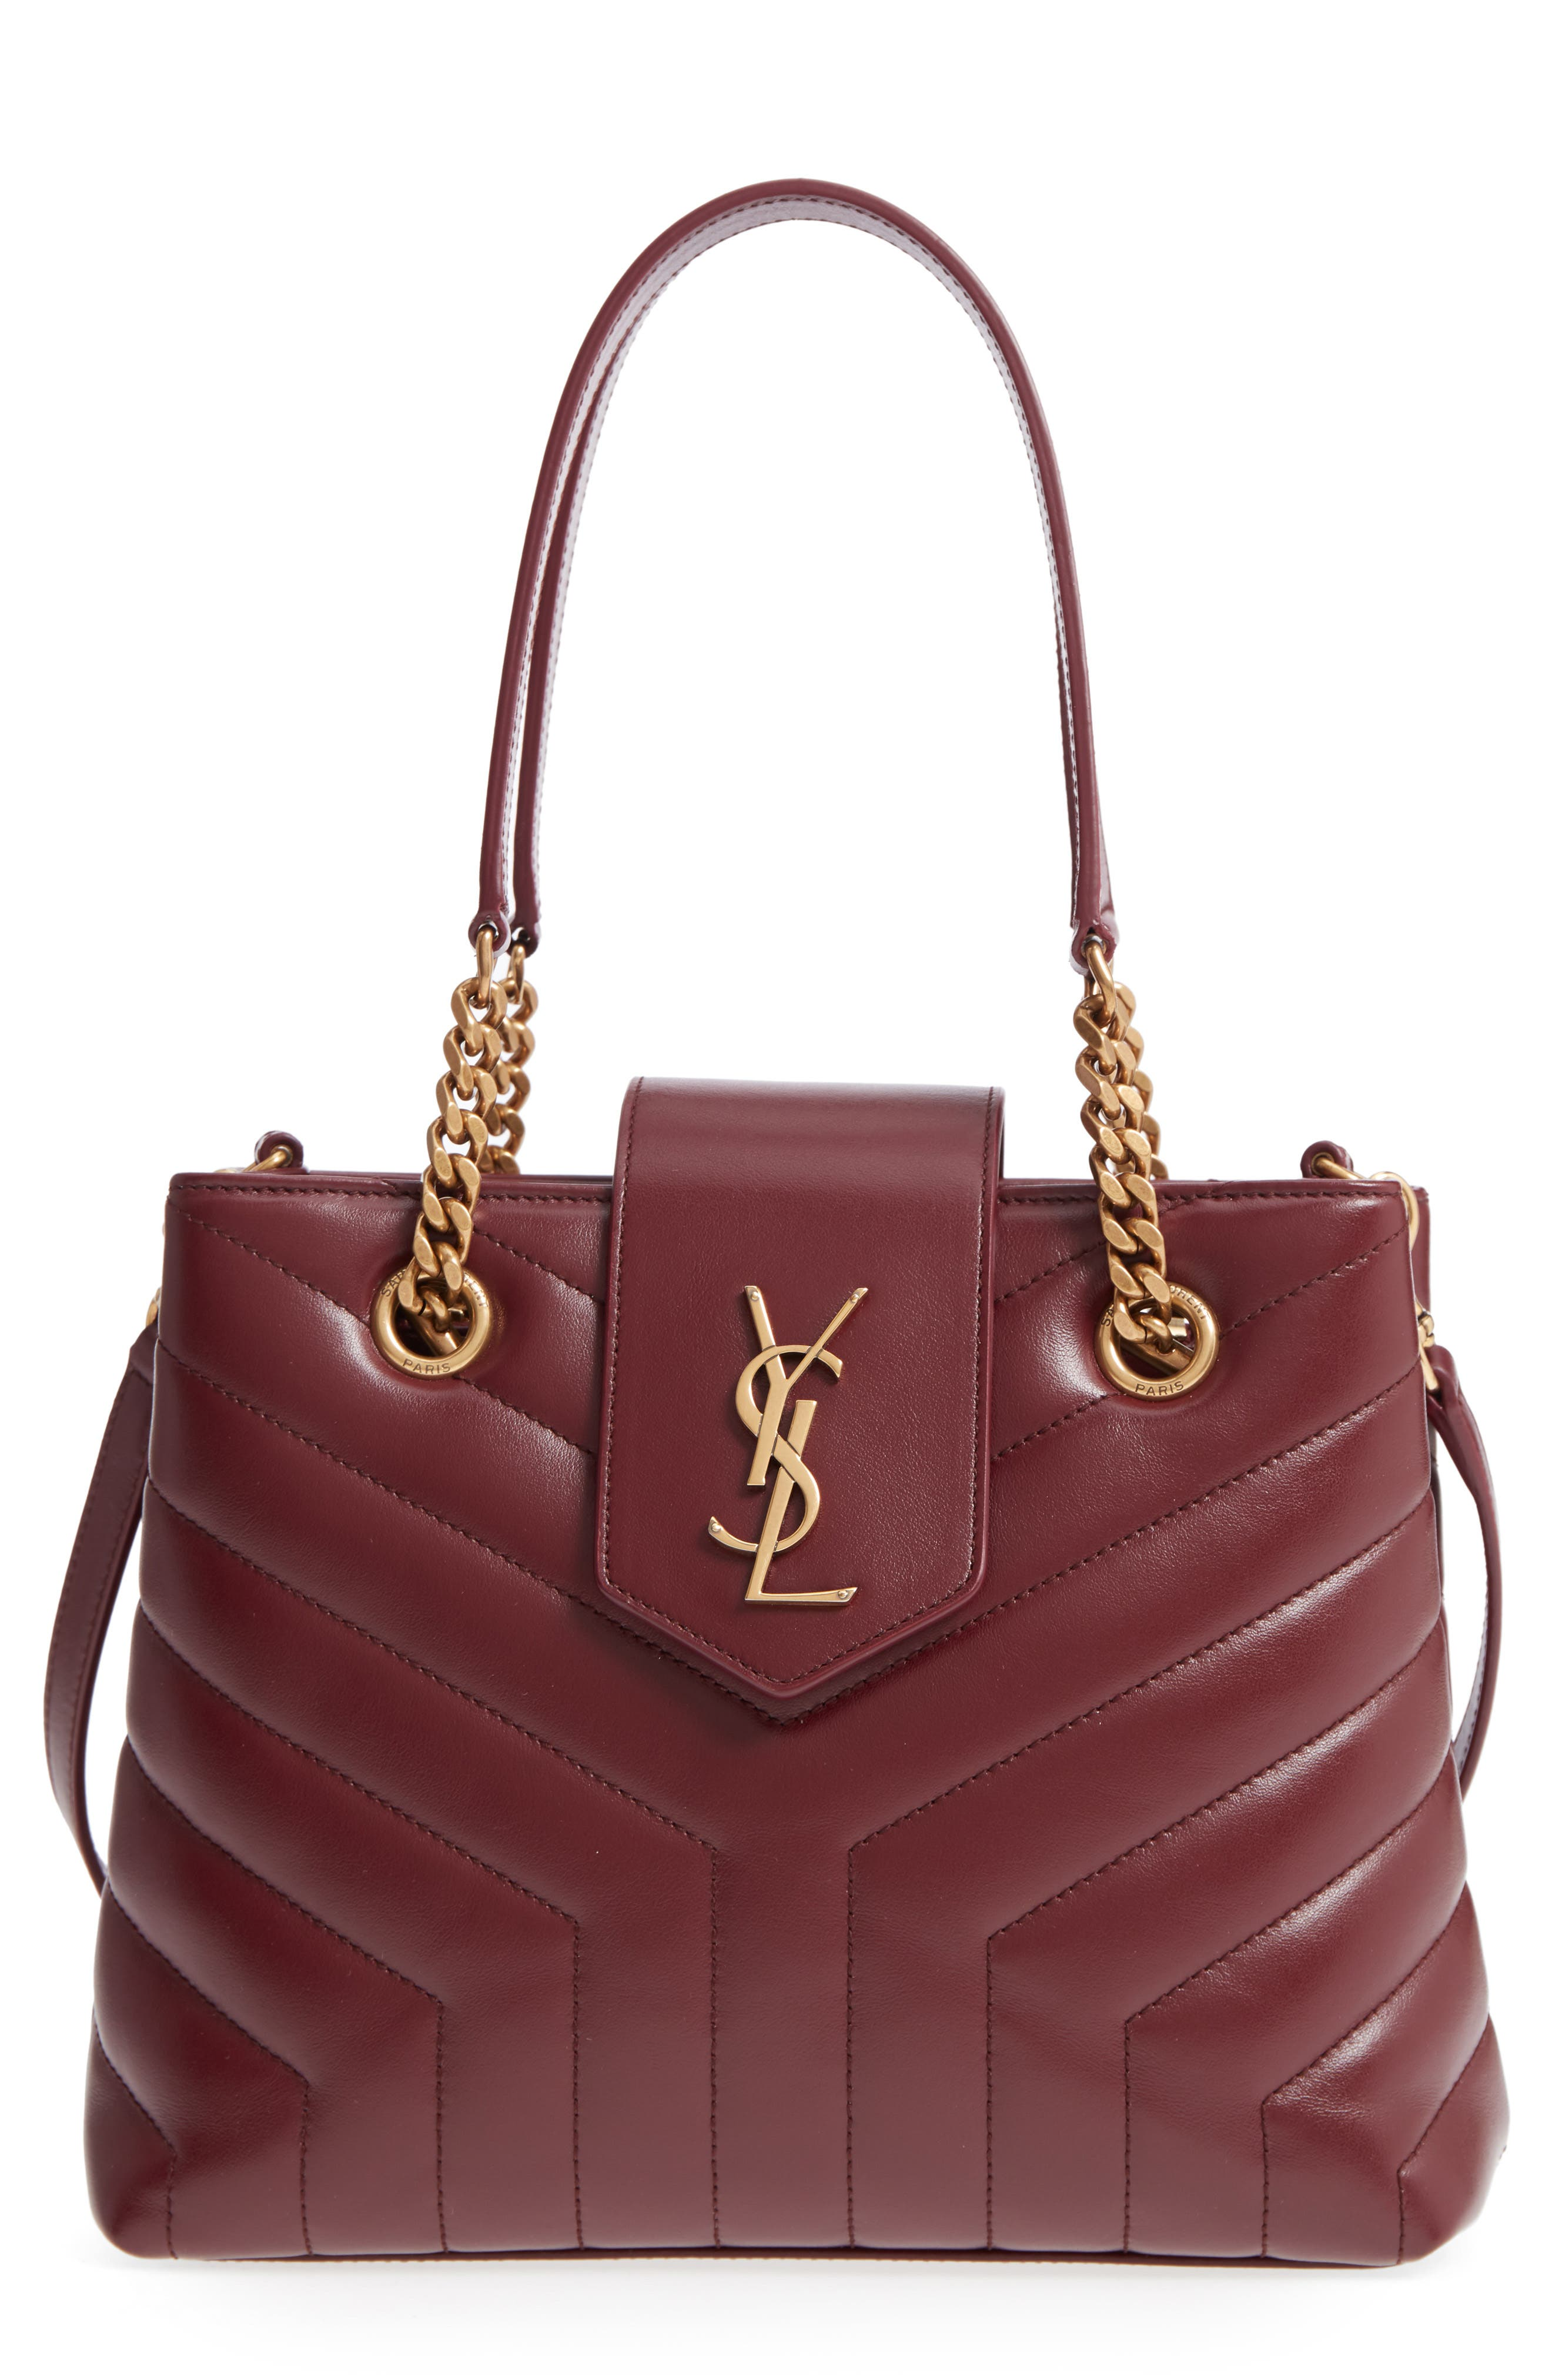 Saint Laurent Small Lou Lou Matelassé Calfskin Leather Shopping Tote